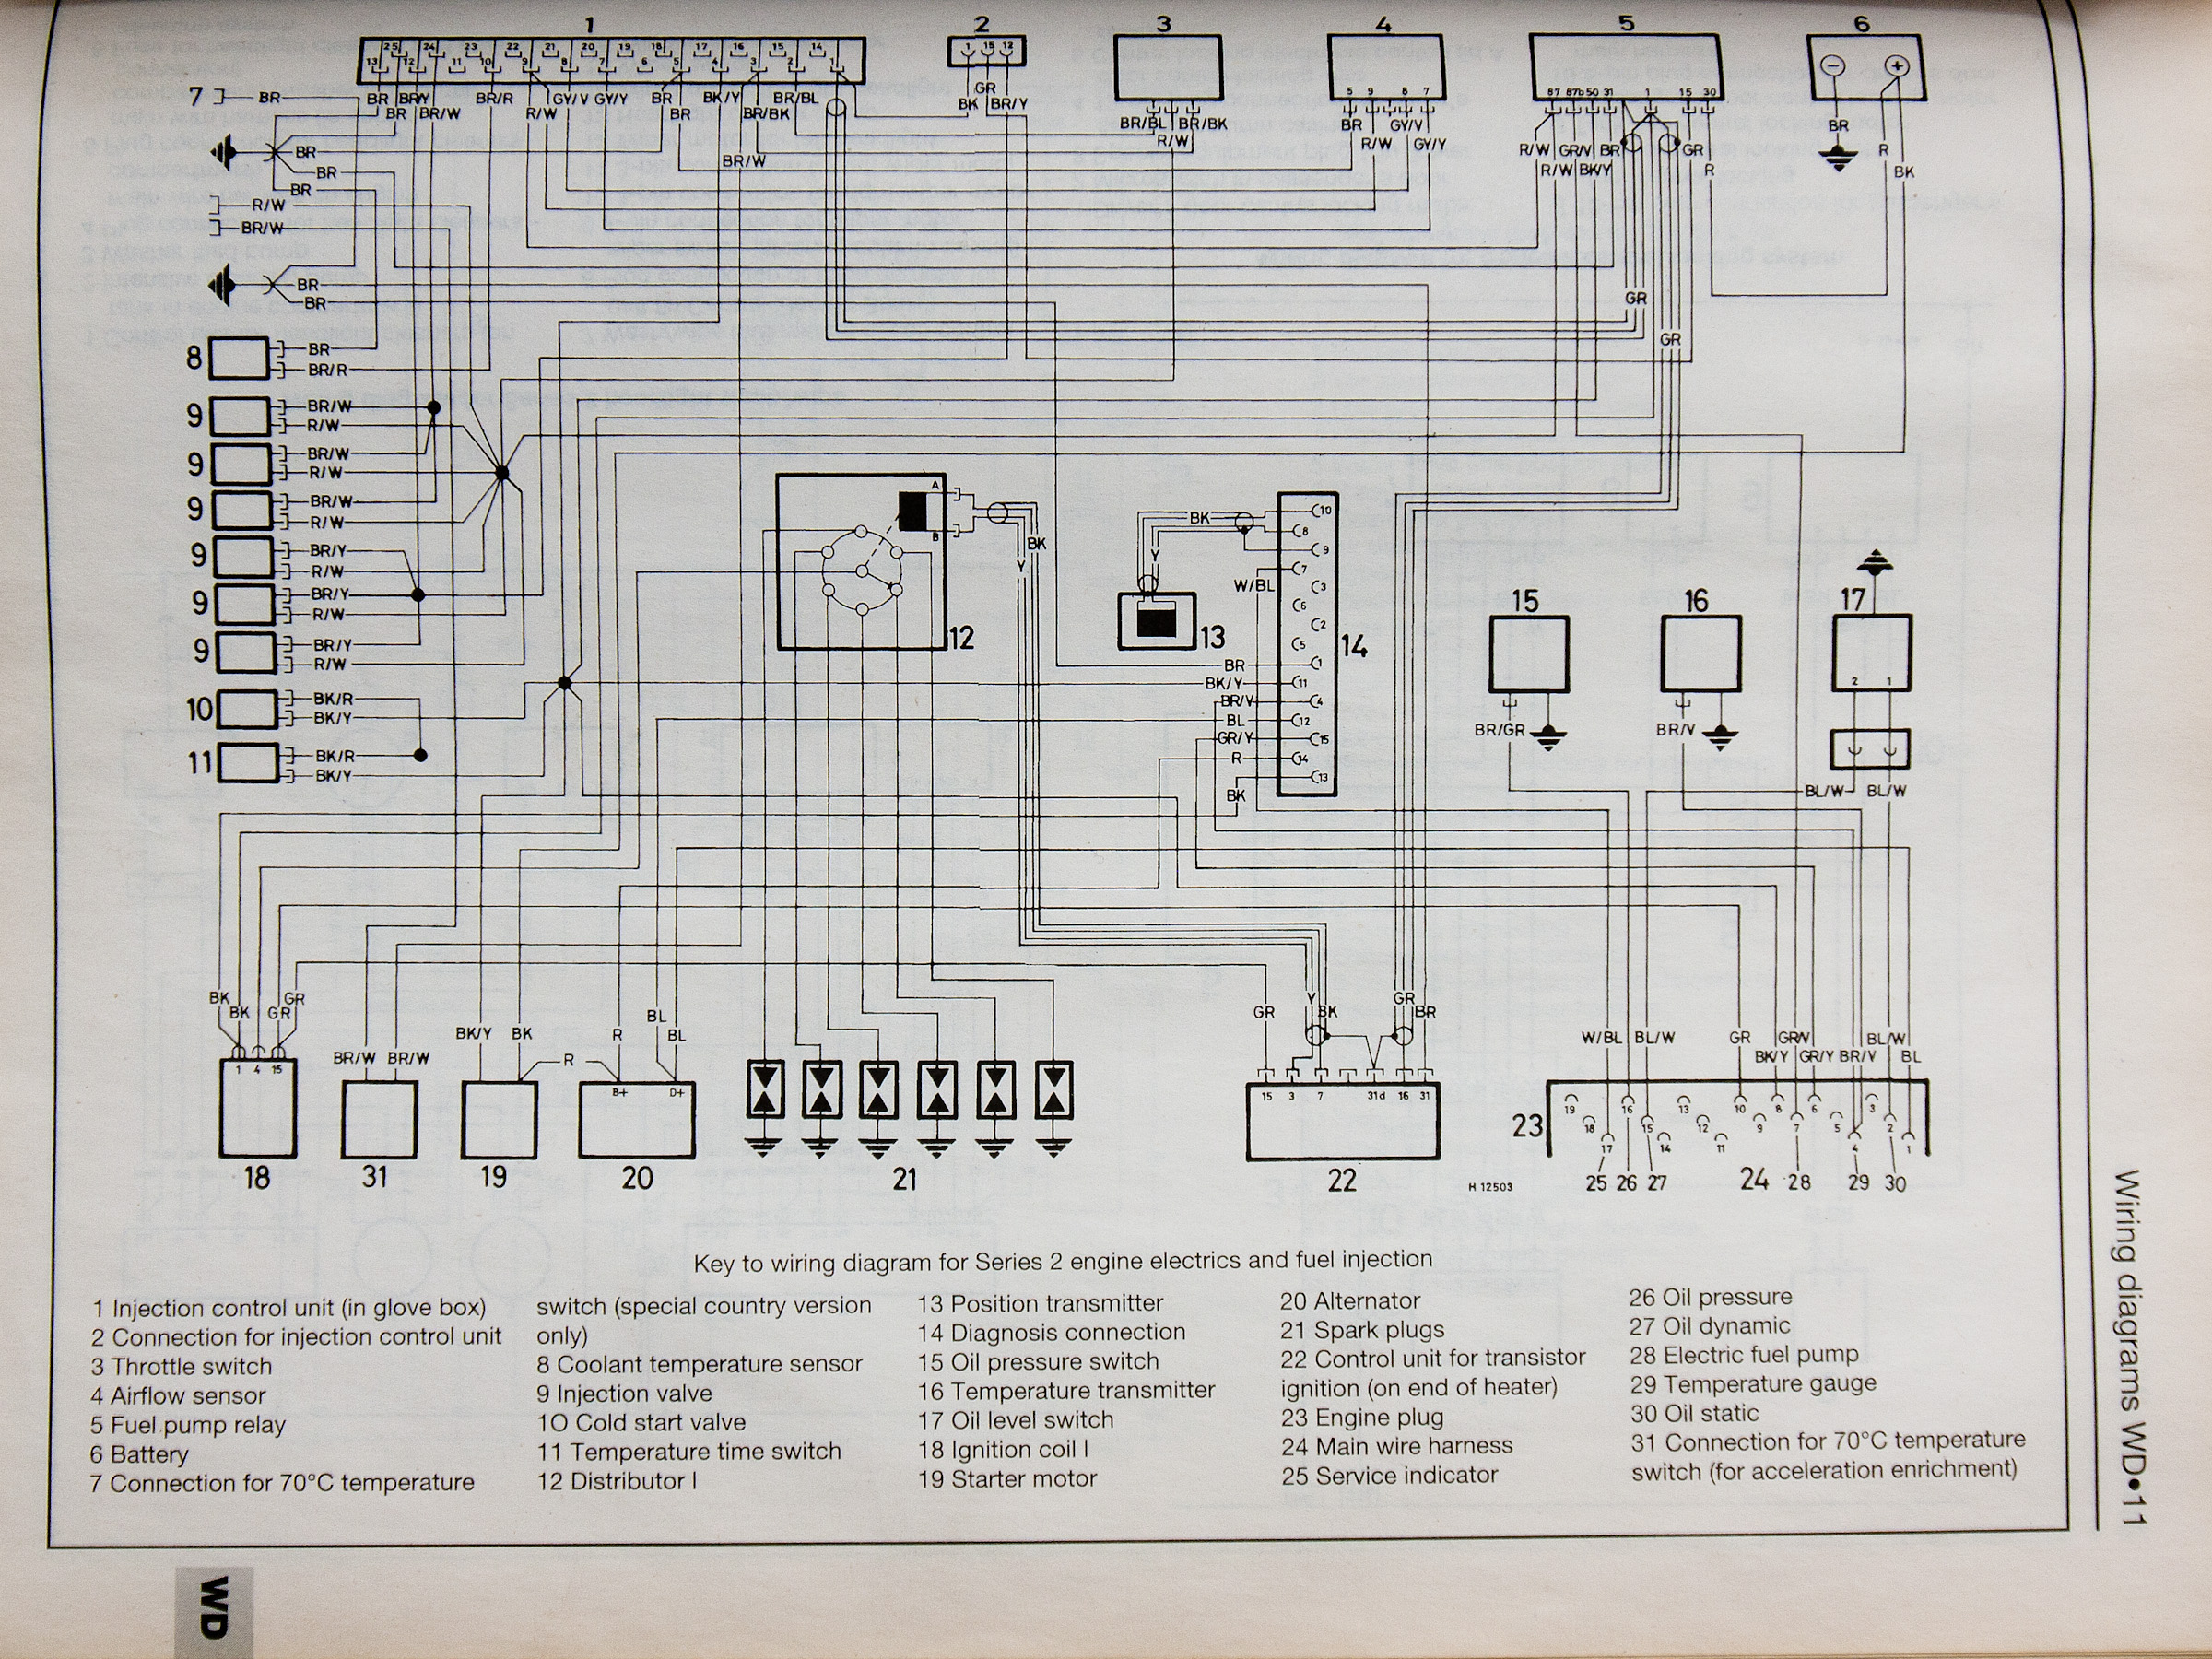 e30_ljetronic_001 e30_ljetronic_001 jpg e30 ignition wiring diagram at soozxer.org